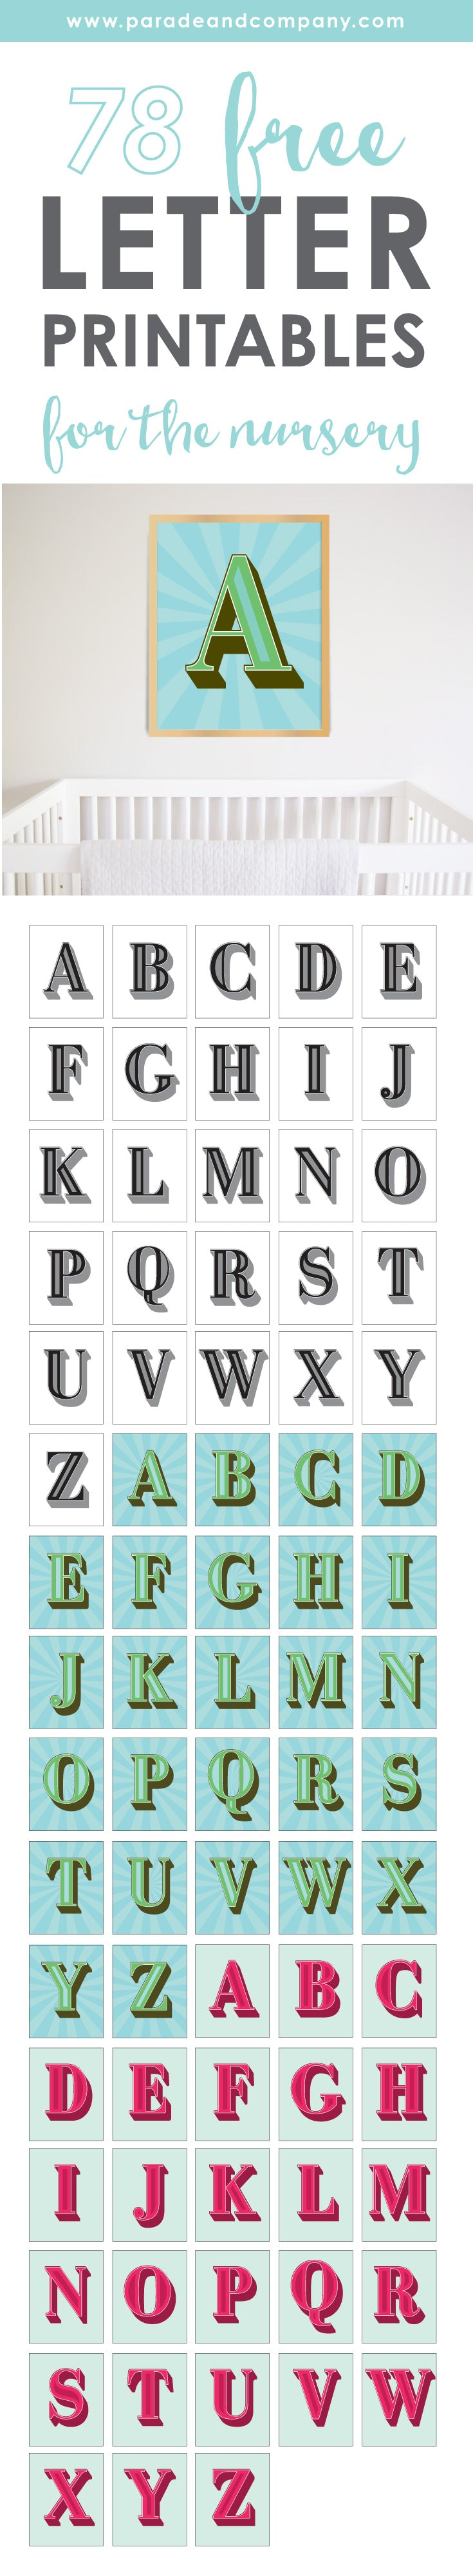 Free Nursery Printables Download Parade And Company Free Letter ...